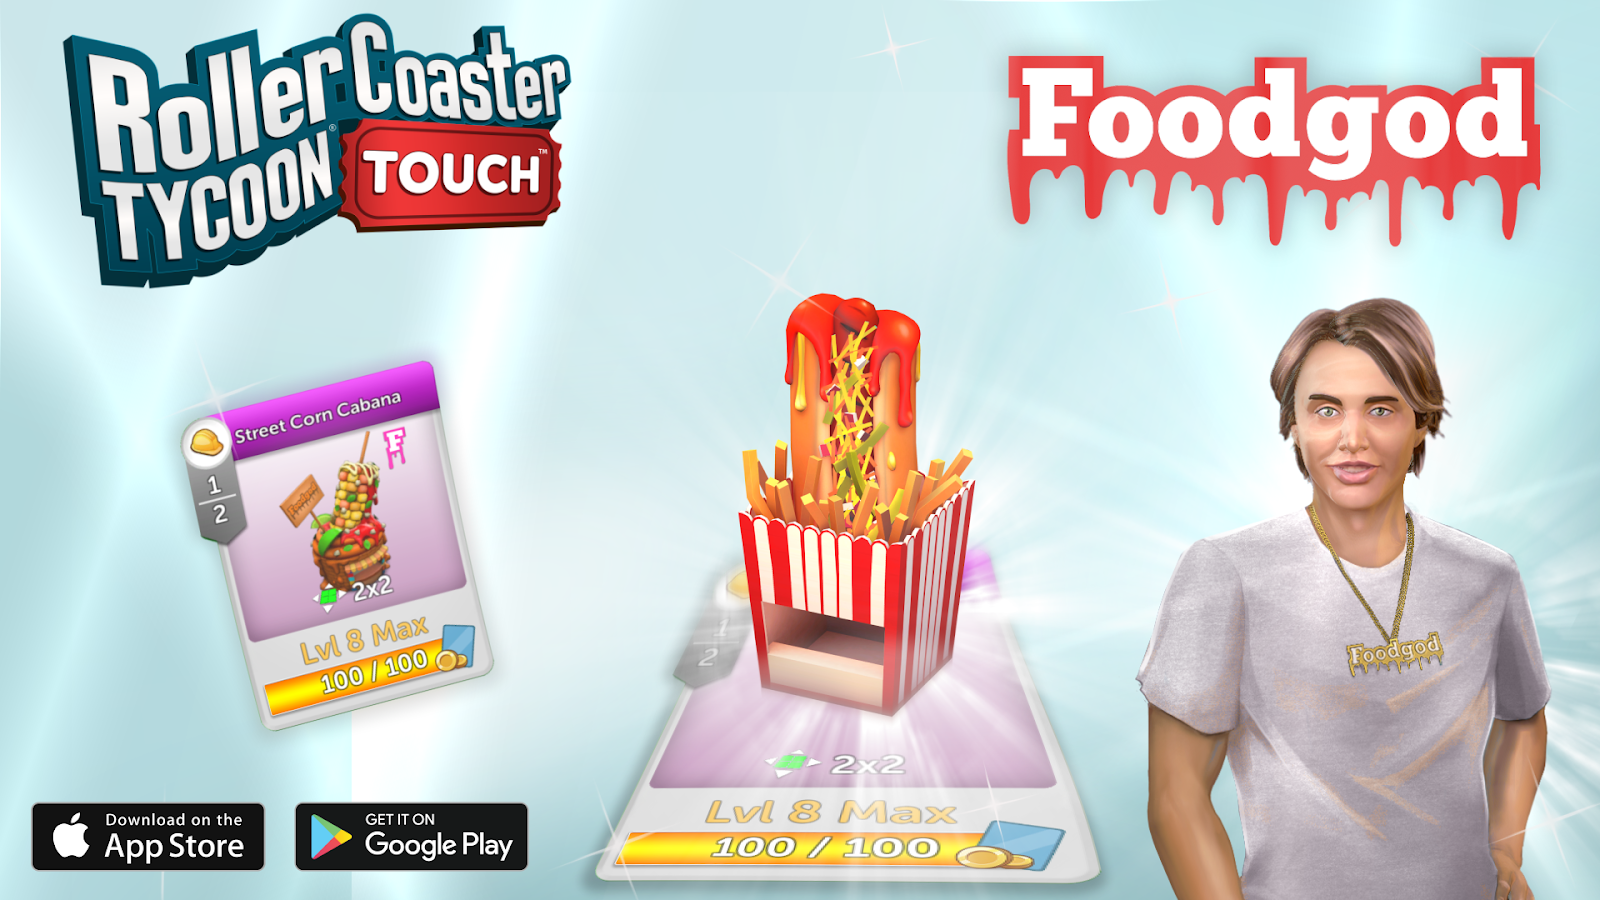 Foodgod (Jonathan Cheban) and Atari® Partner for Tasty Update to the Best-Selling Theme Park Sim RollerCoaster Tycoon® Touch™